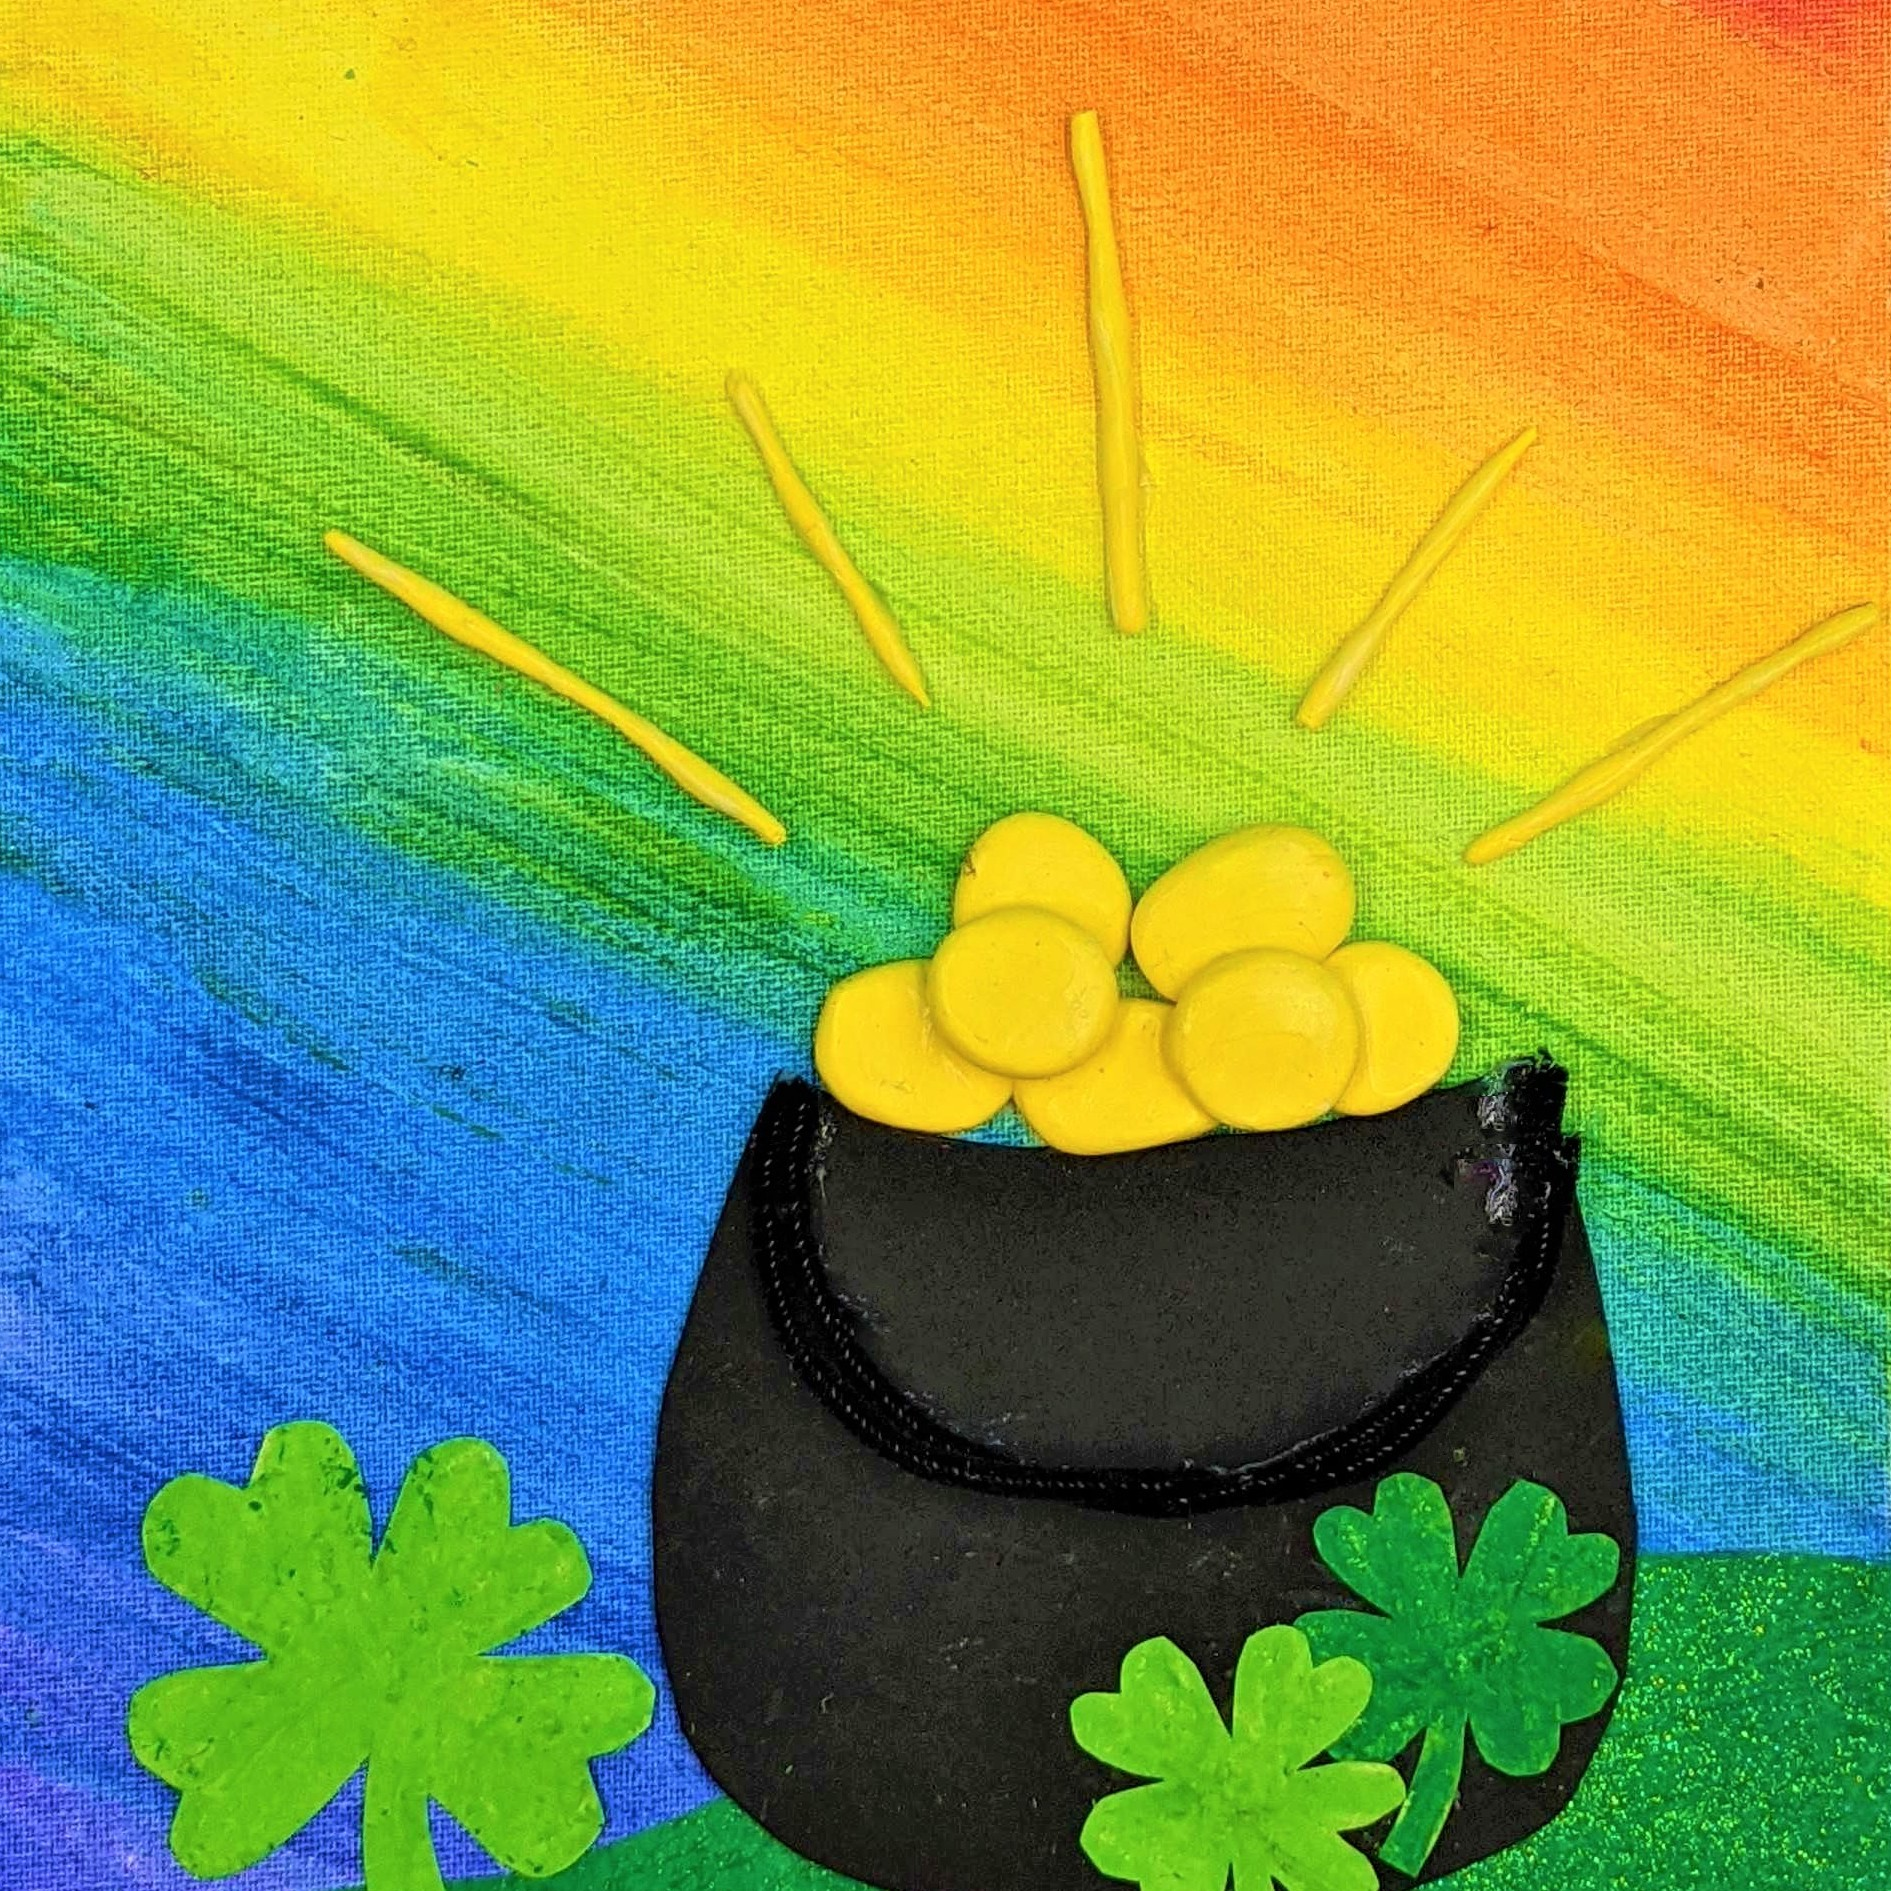 Kidcreate Studio, St. Patrick's Day Rainbow on Canvas Art Project